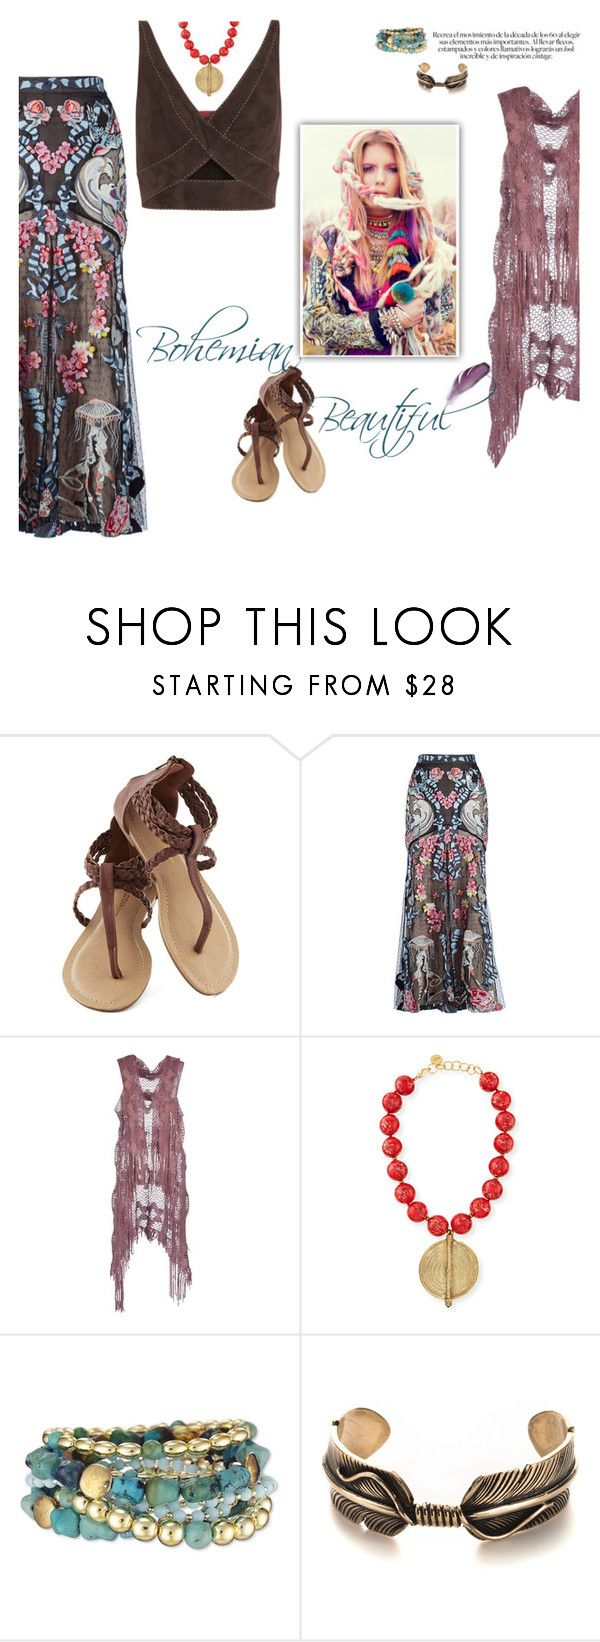 """Boho"" by sassiesavy ❤ liked on Polyvore featuring Temperley London, Sarah Jackson, NEST Jewelry and Tamara Mellon"